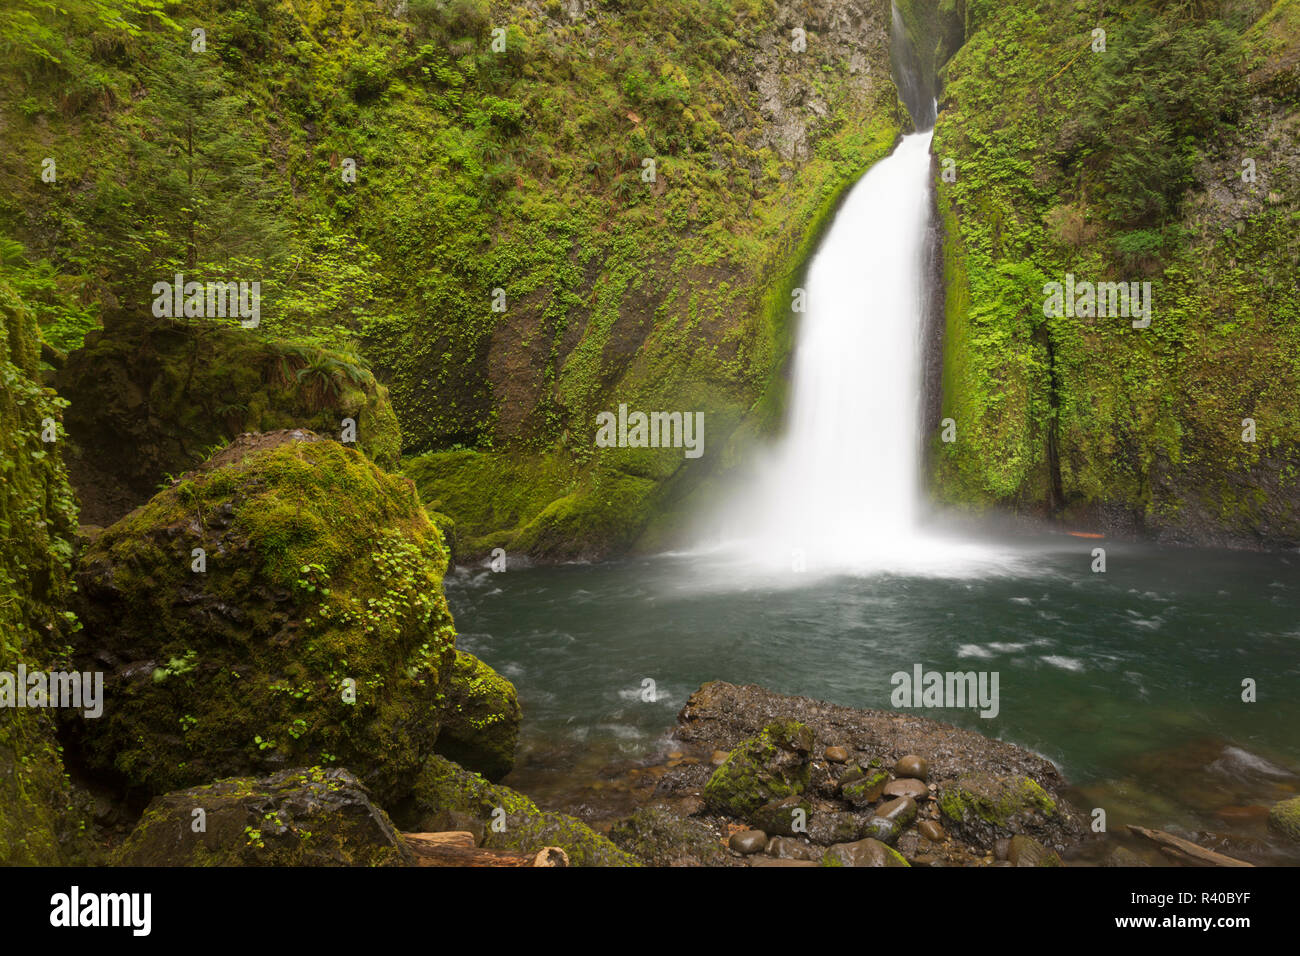 USA, Oregon, Columbia River Gorge. Wahclella Falls landscape. Credit as: Don Grall / Jaynes Gallery / DanitaDelimont. com - Stock Image